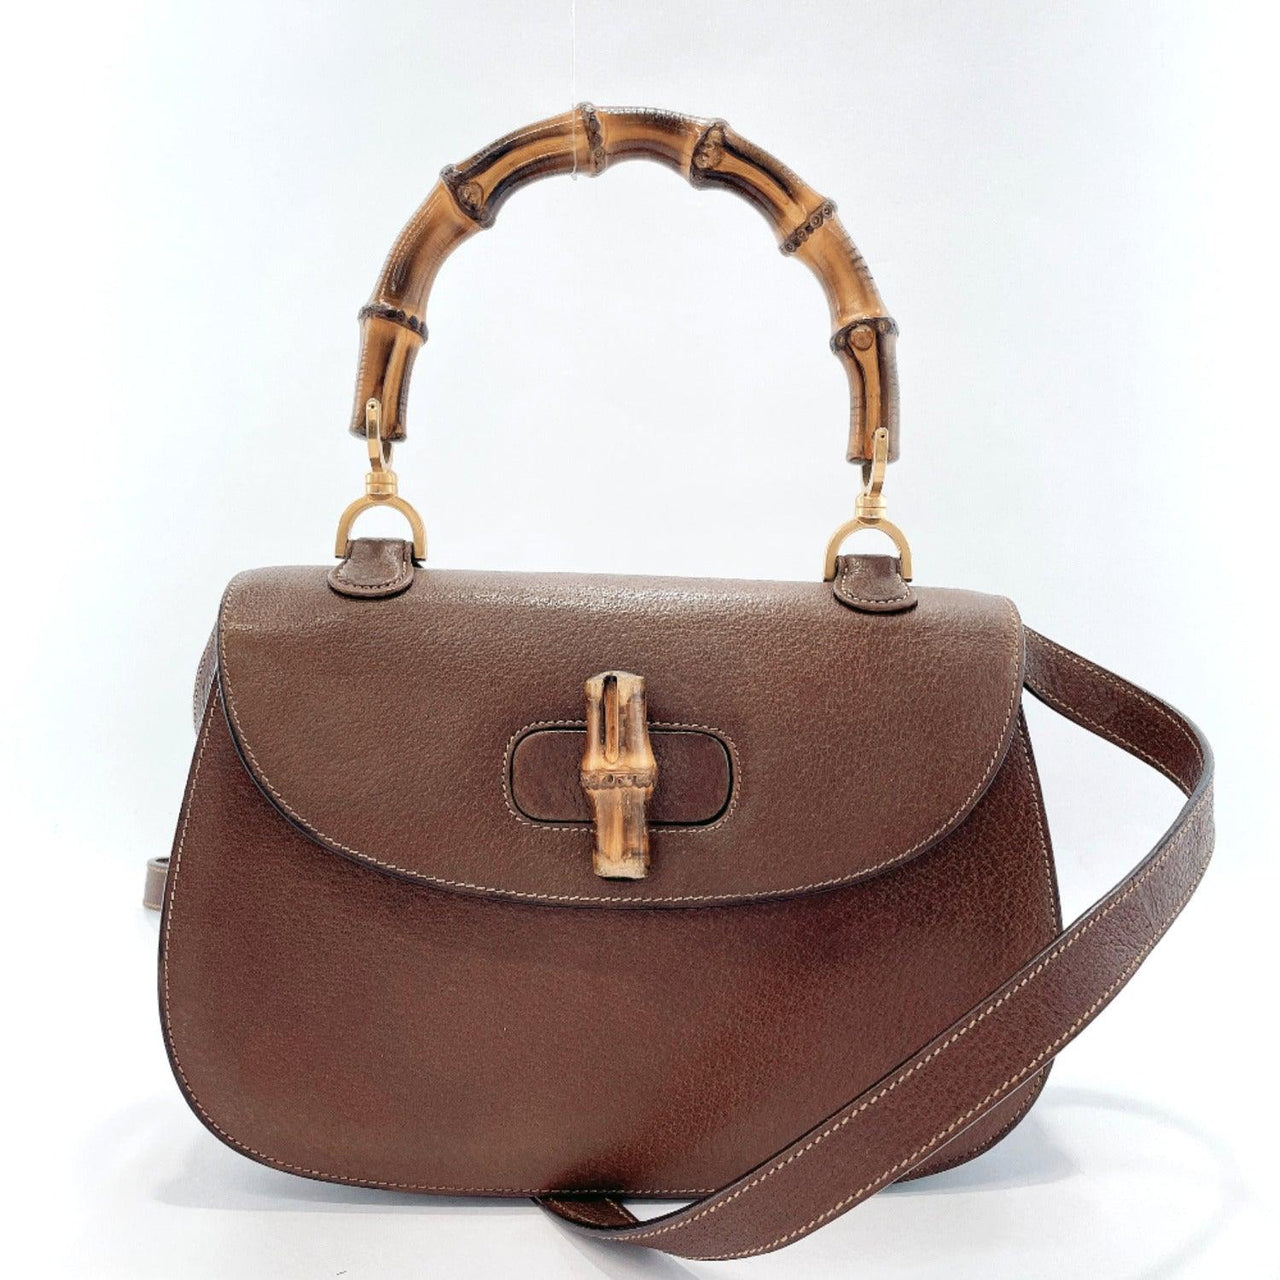 GUCCI Shoulder Bag Bamboo 2way vintage leather Brown Women Used